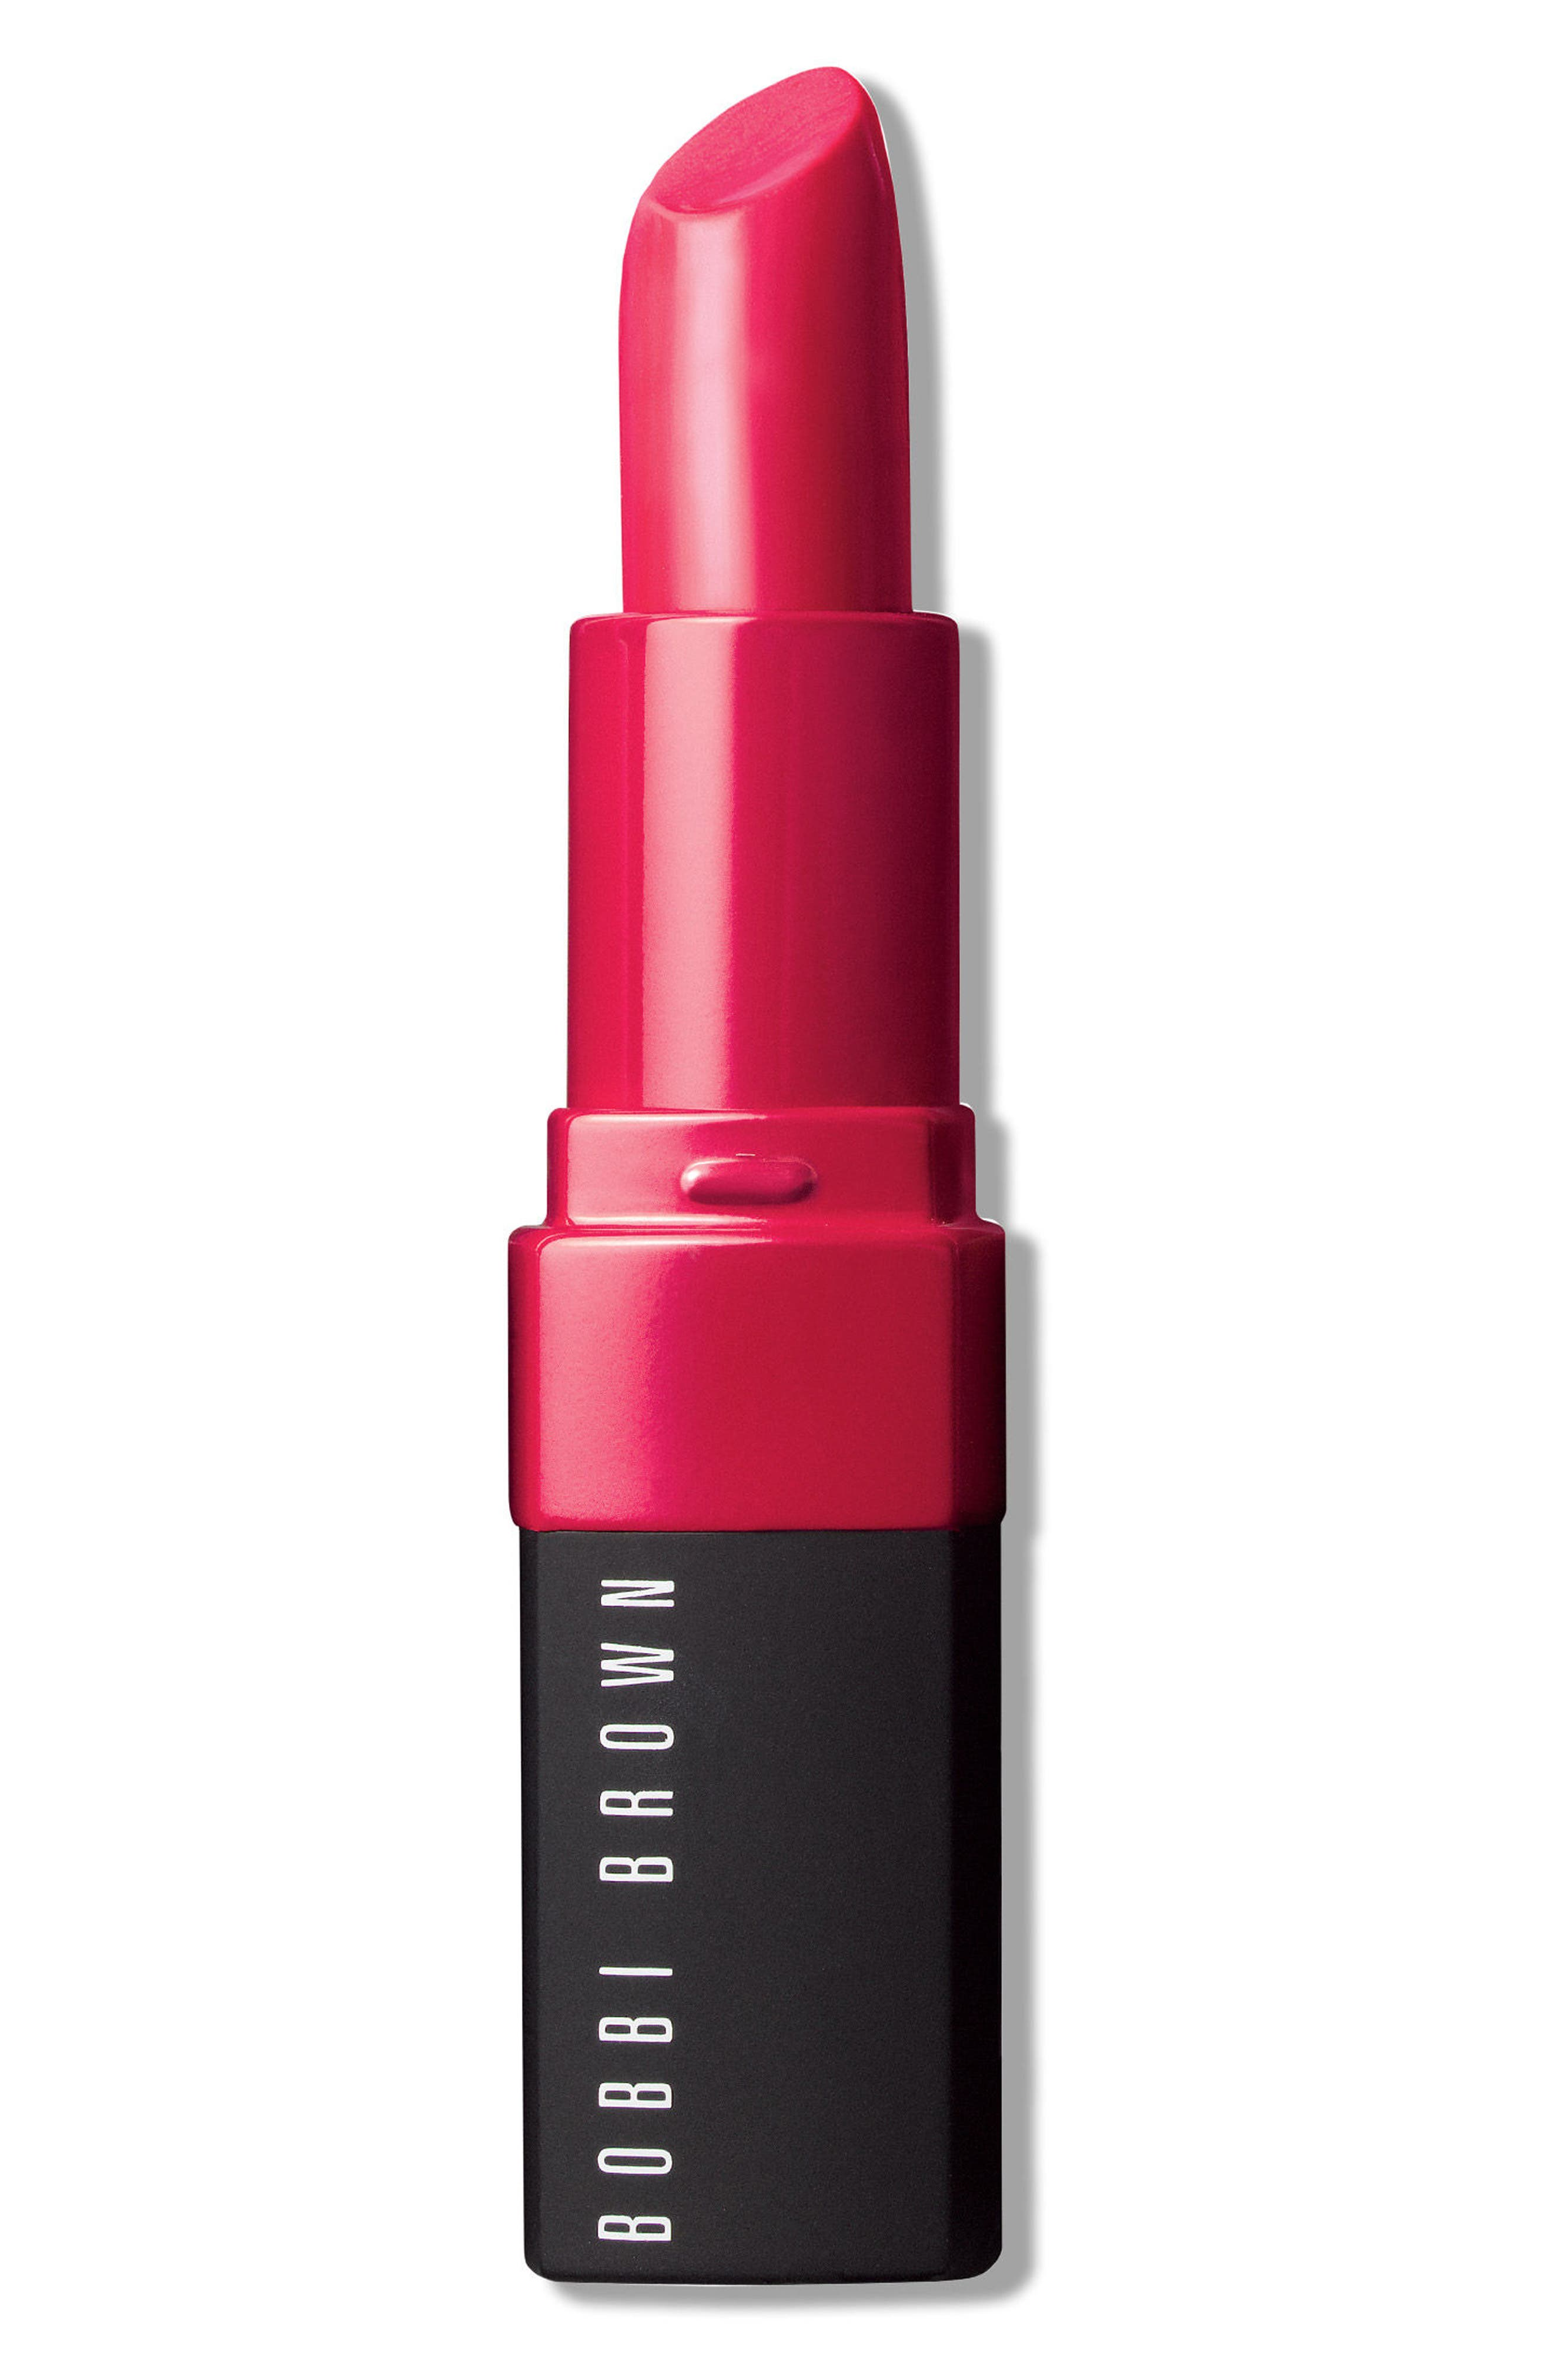 Crushed Lipstick - Punch / Mid Tone Red Pink